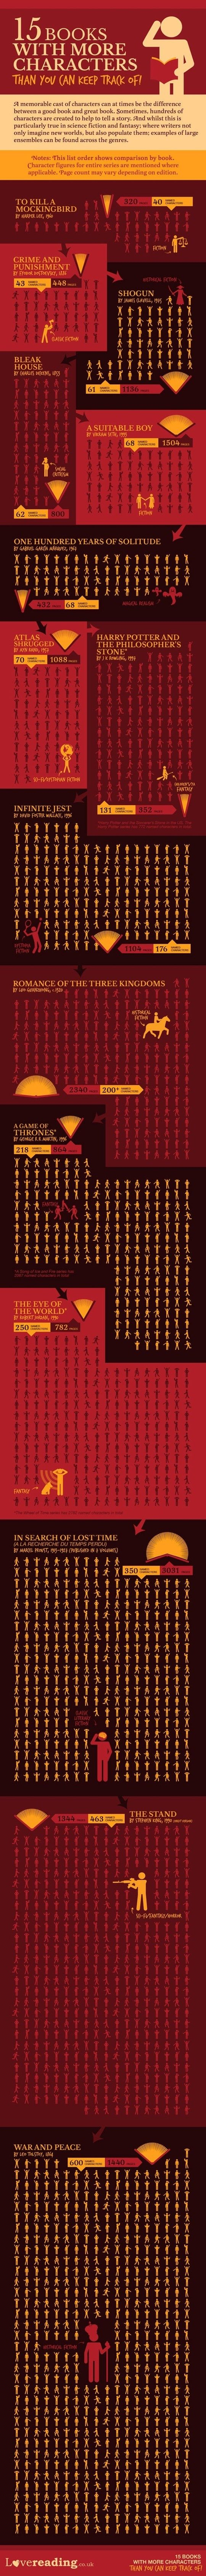 Books with more characters than you can keep track of #infographic